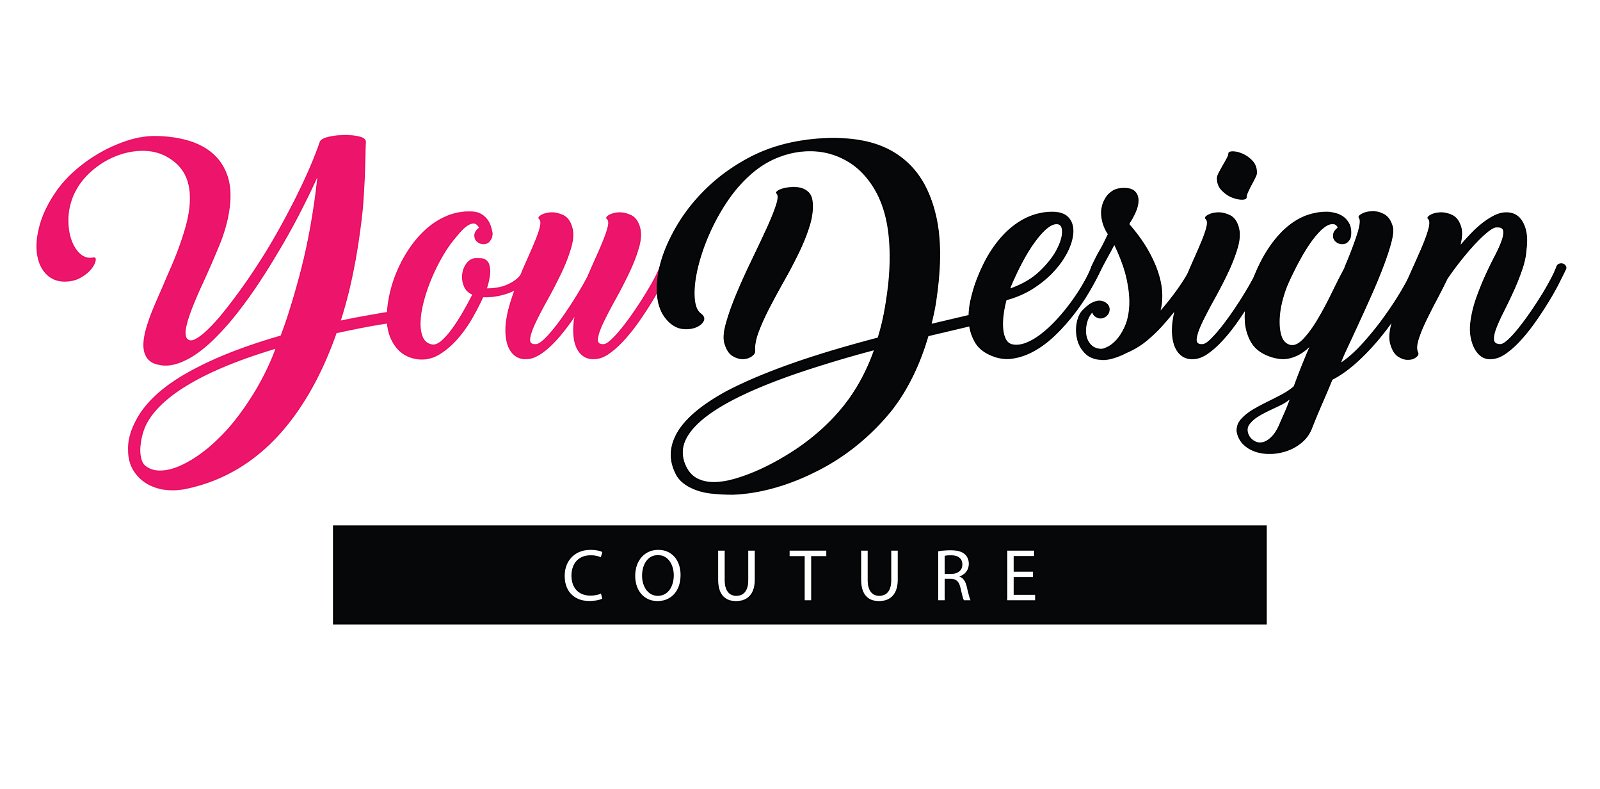 Youdesign is a platform created by Ninecolours that helps you create your own custom designer garment from scratch, any way you want and have your customized garment delivered at your doorstep.